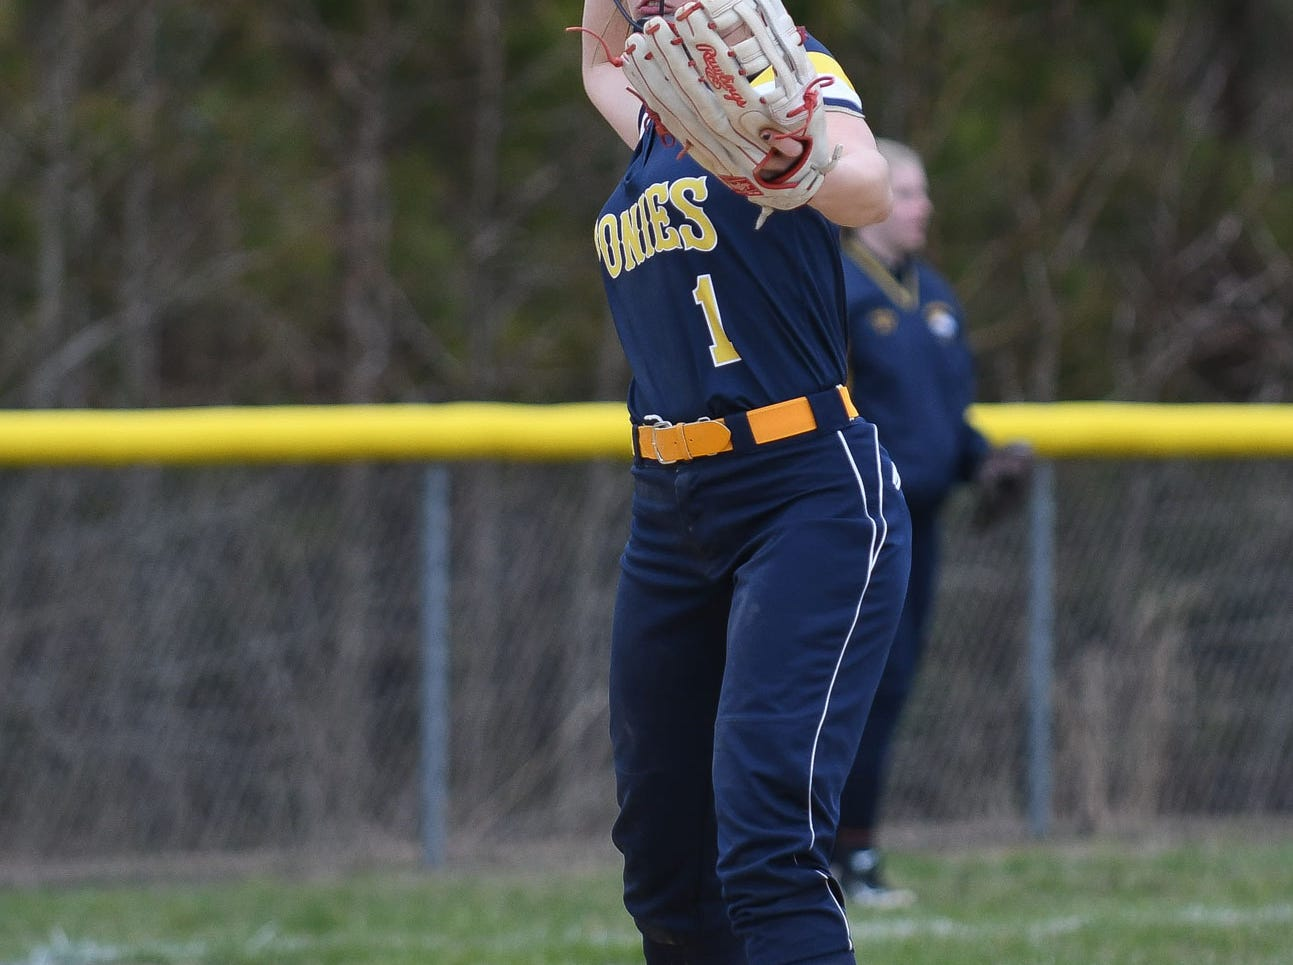 Chincoteague's Emma Jackson with the throw from 3rd base against Holly Grove on Wednesday, March 20, 2019 in Westover, Md.